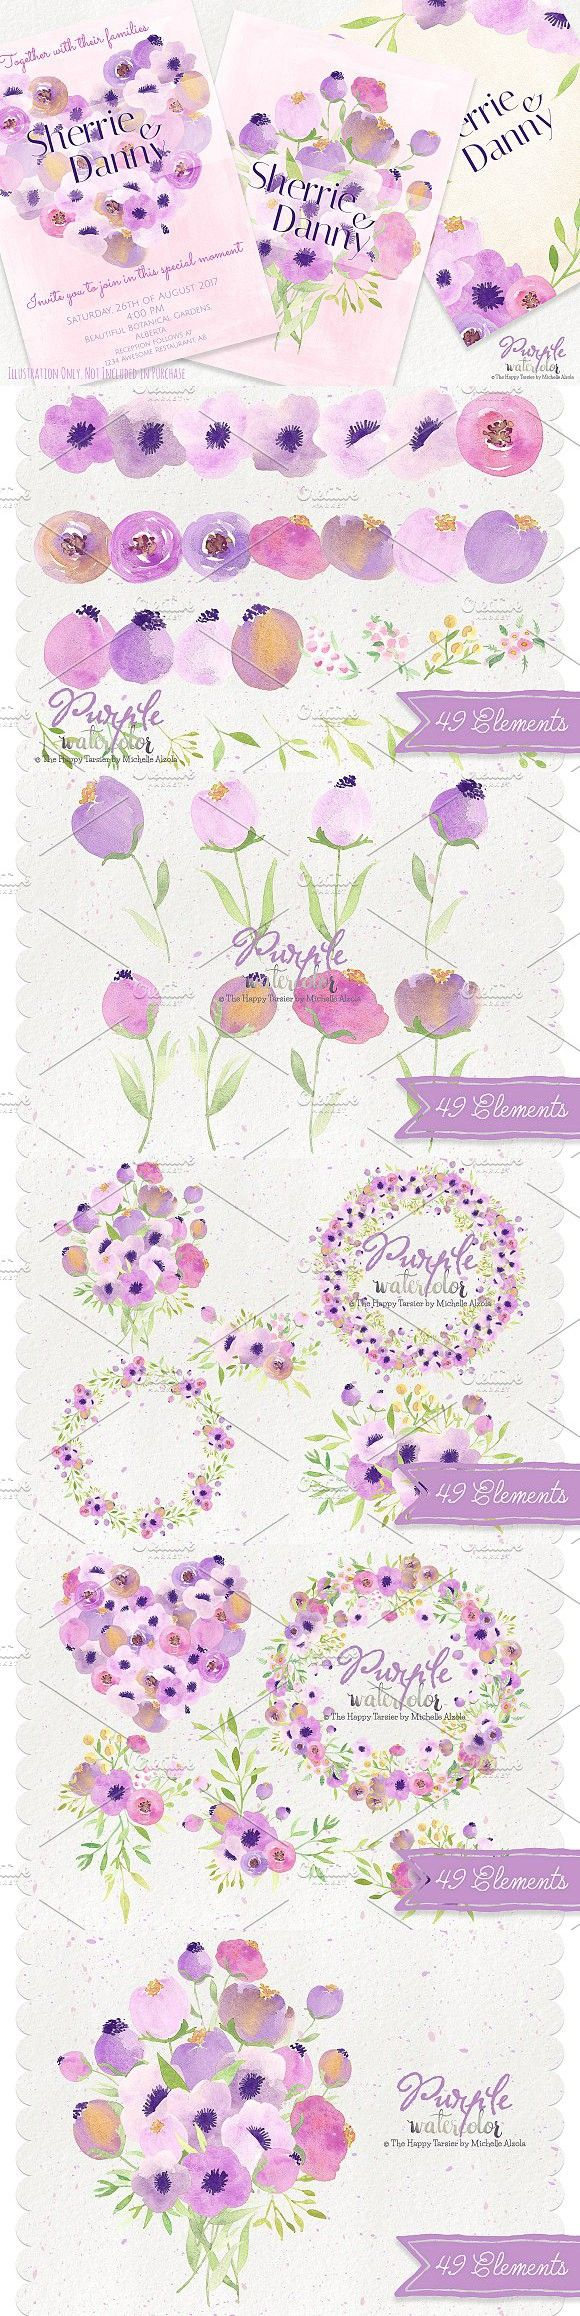 hight resolution of watercolor purple flower clipart watercolor graphic design pinterest flower clipart